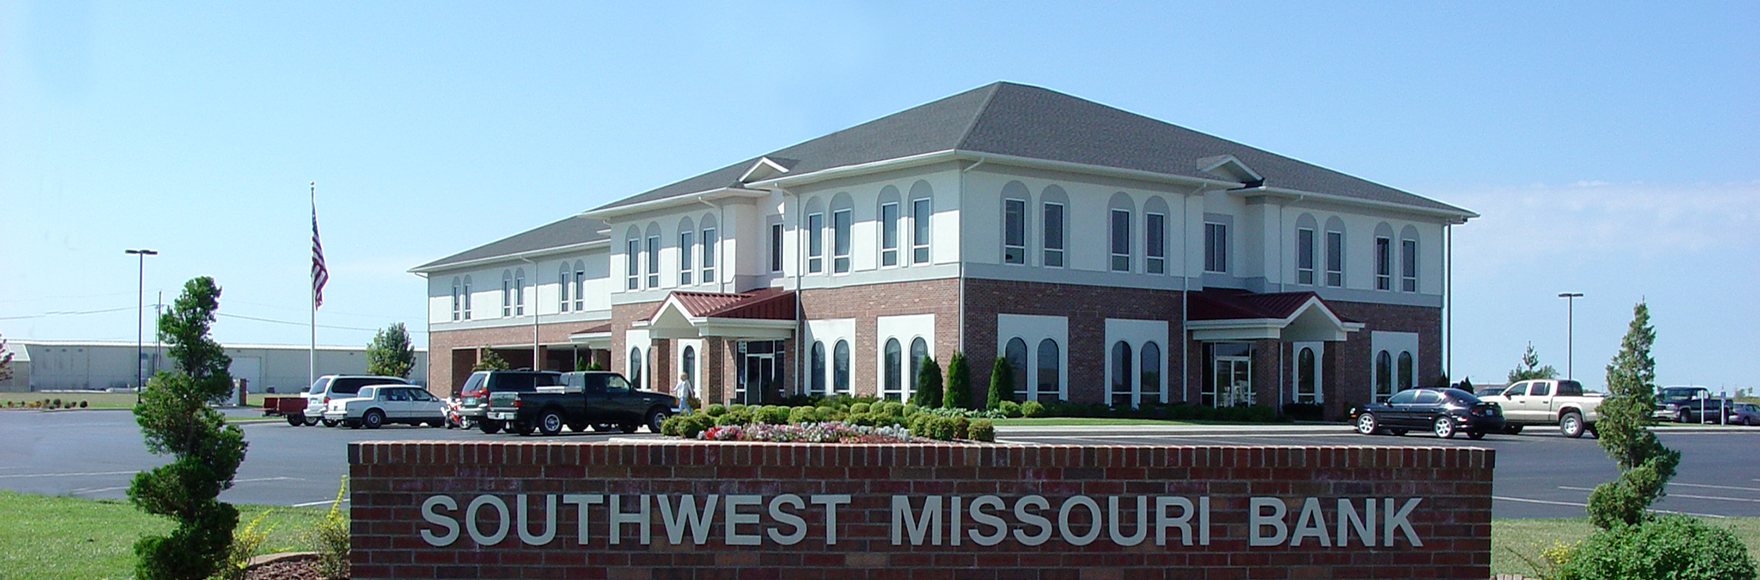 SMB Online banking from Southwest Missouri Bank